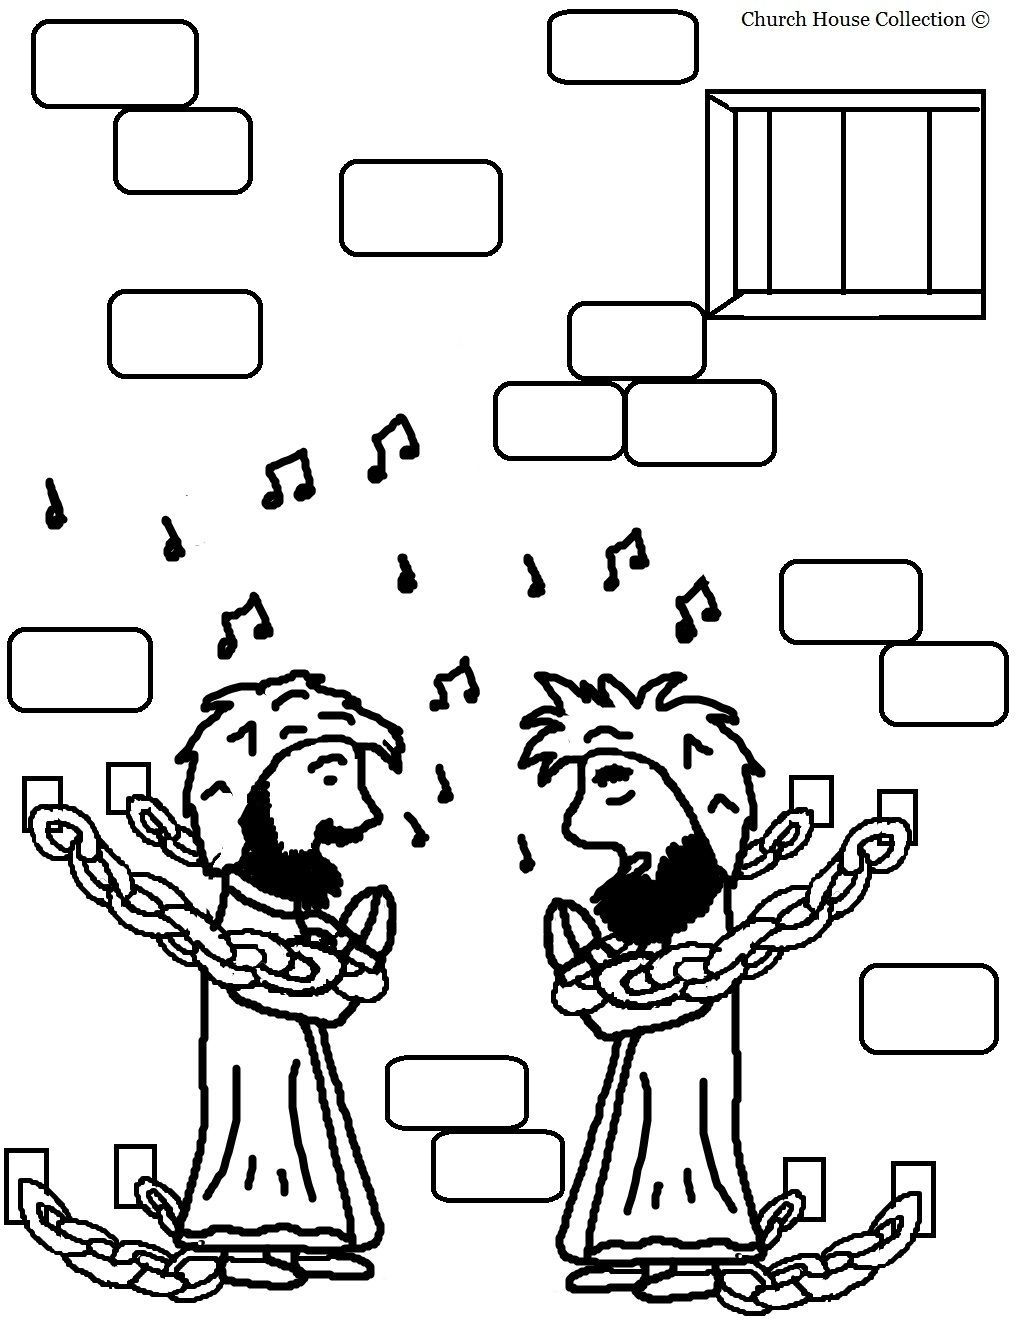 paul and silas coloring page view source image bible coloring pages bible story coloring and silas page paul